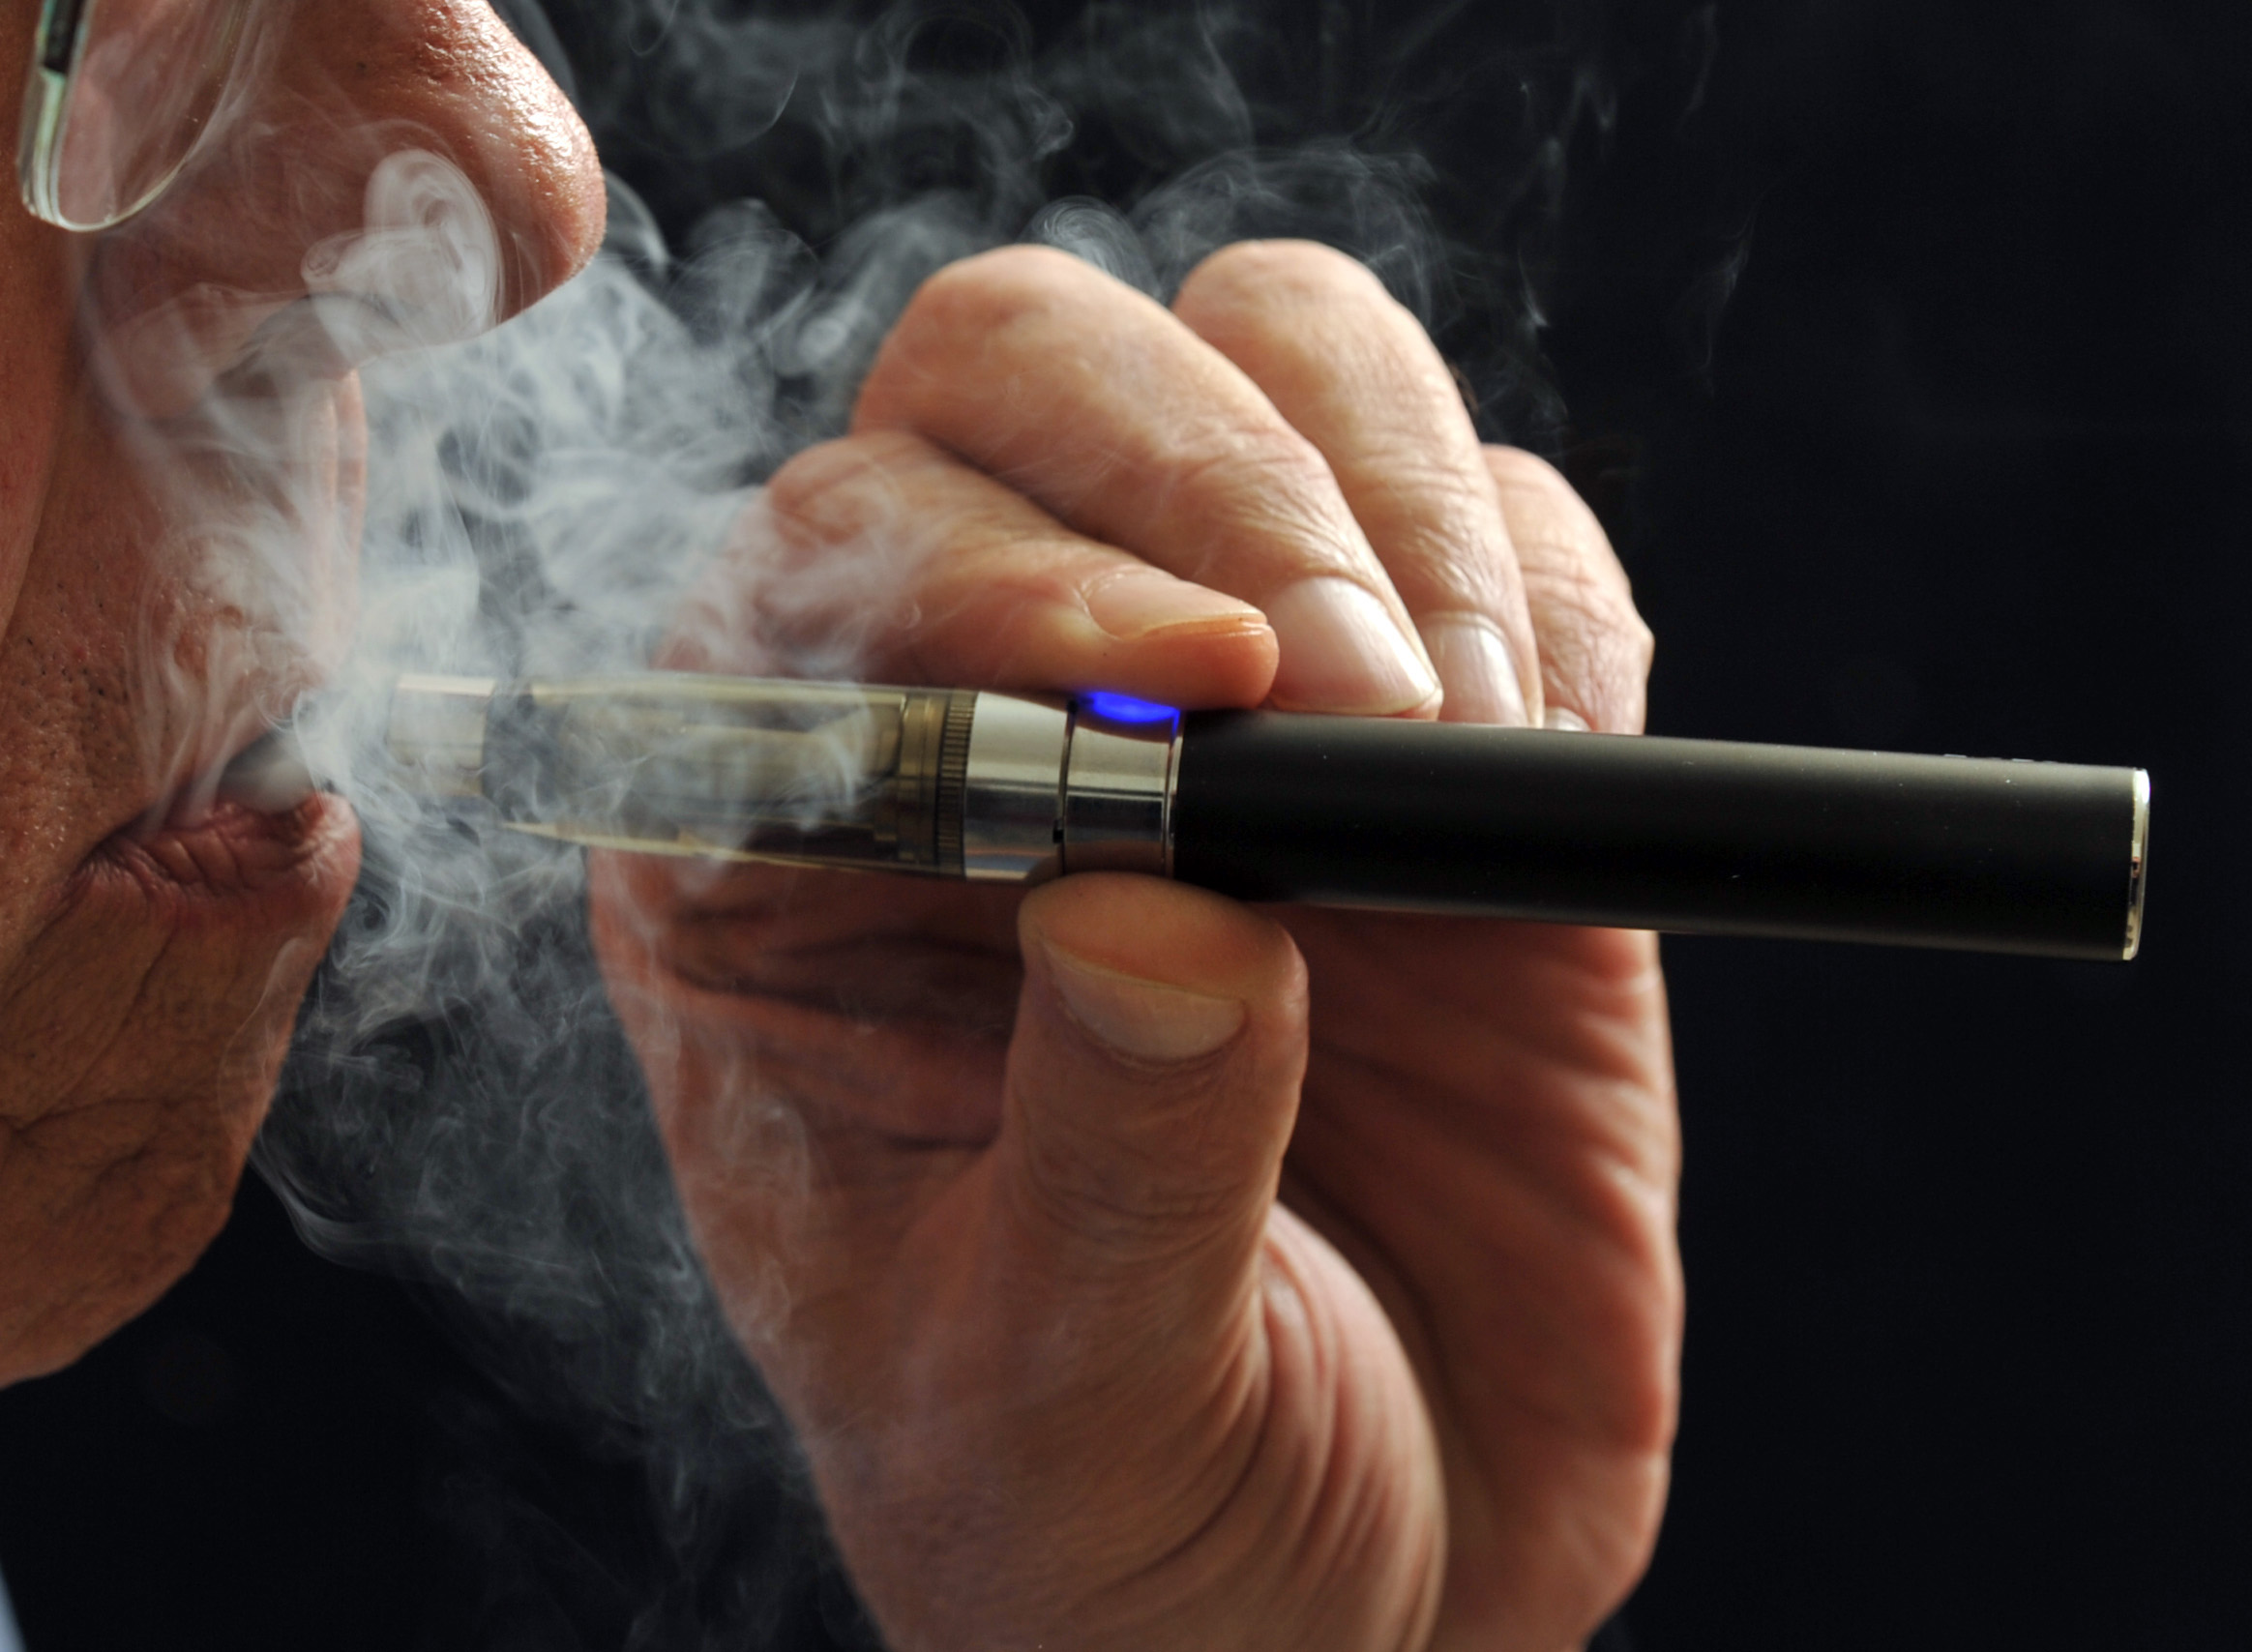 How to put weed into an e cigarette